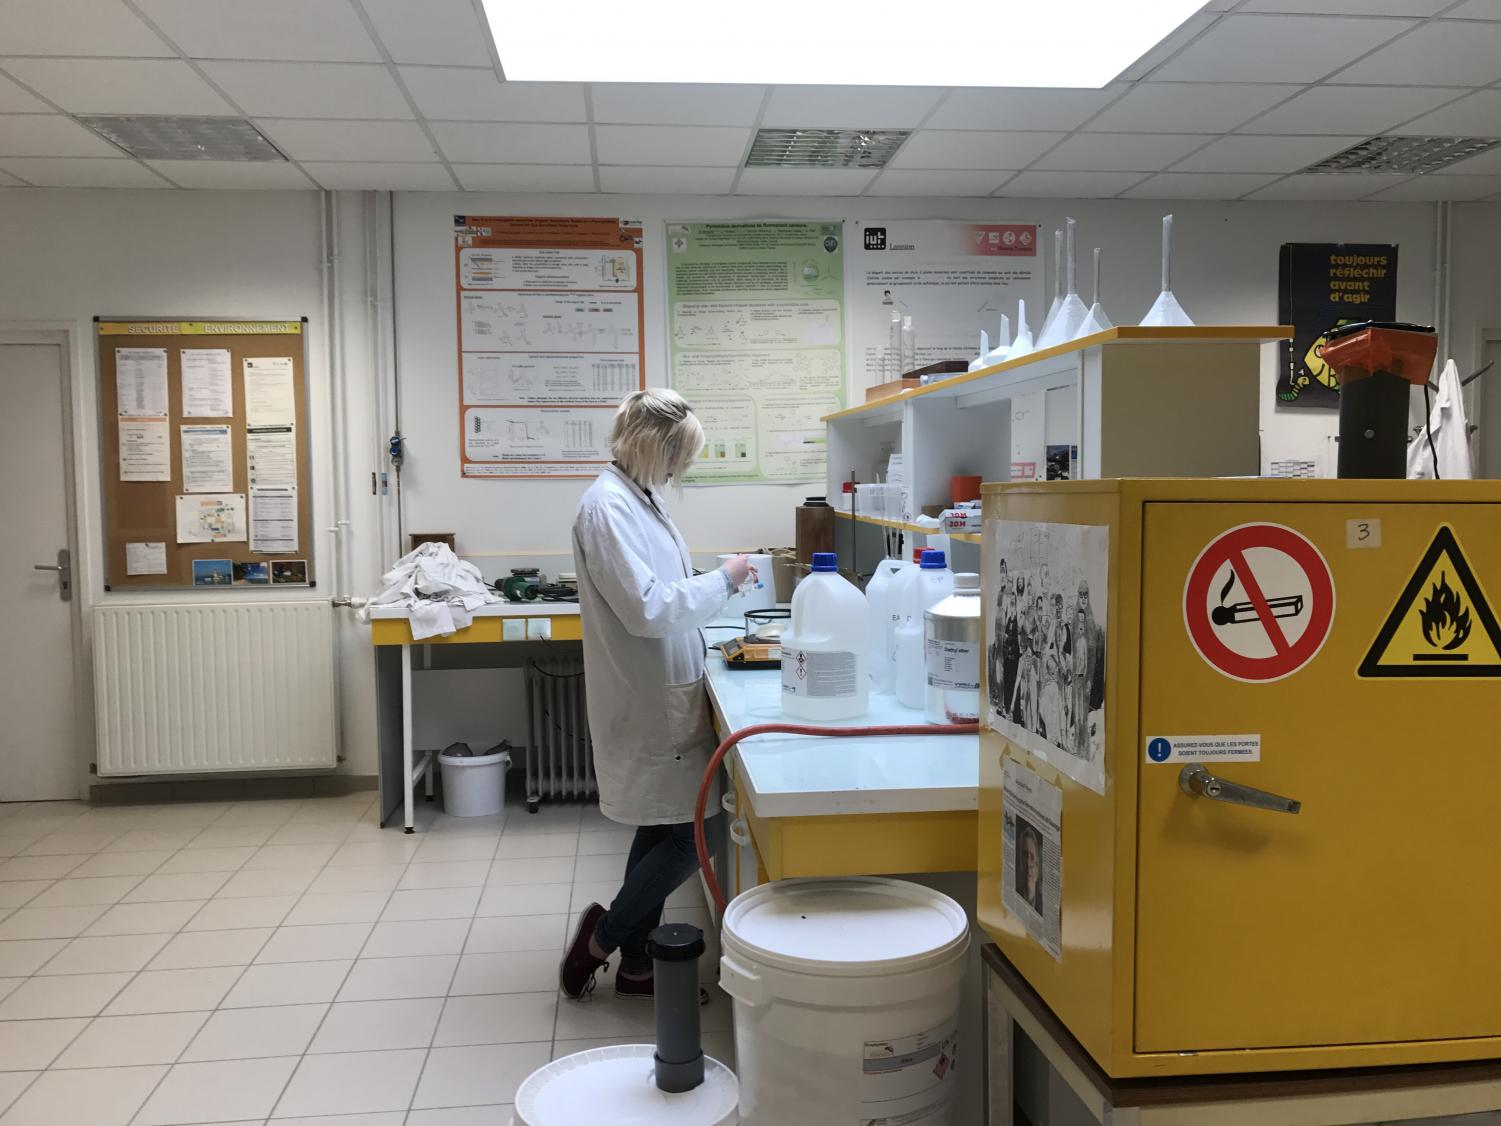 Allison Gast, who traveled to France through STEM-IRSEP this summer, working in the lab while in France.